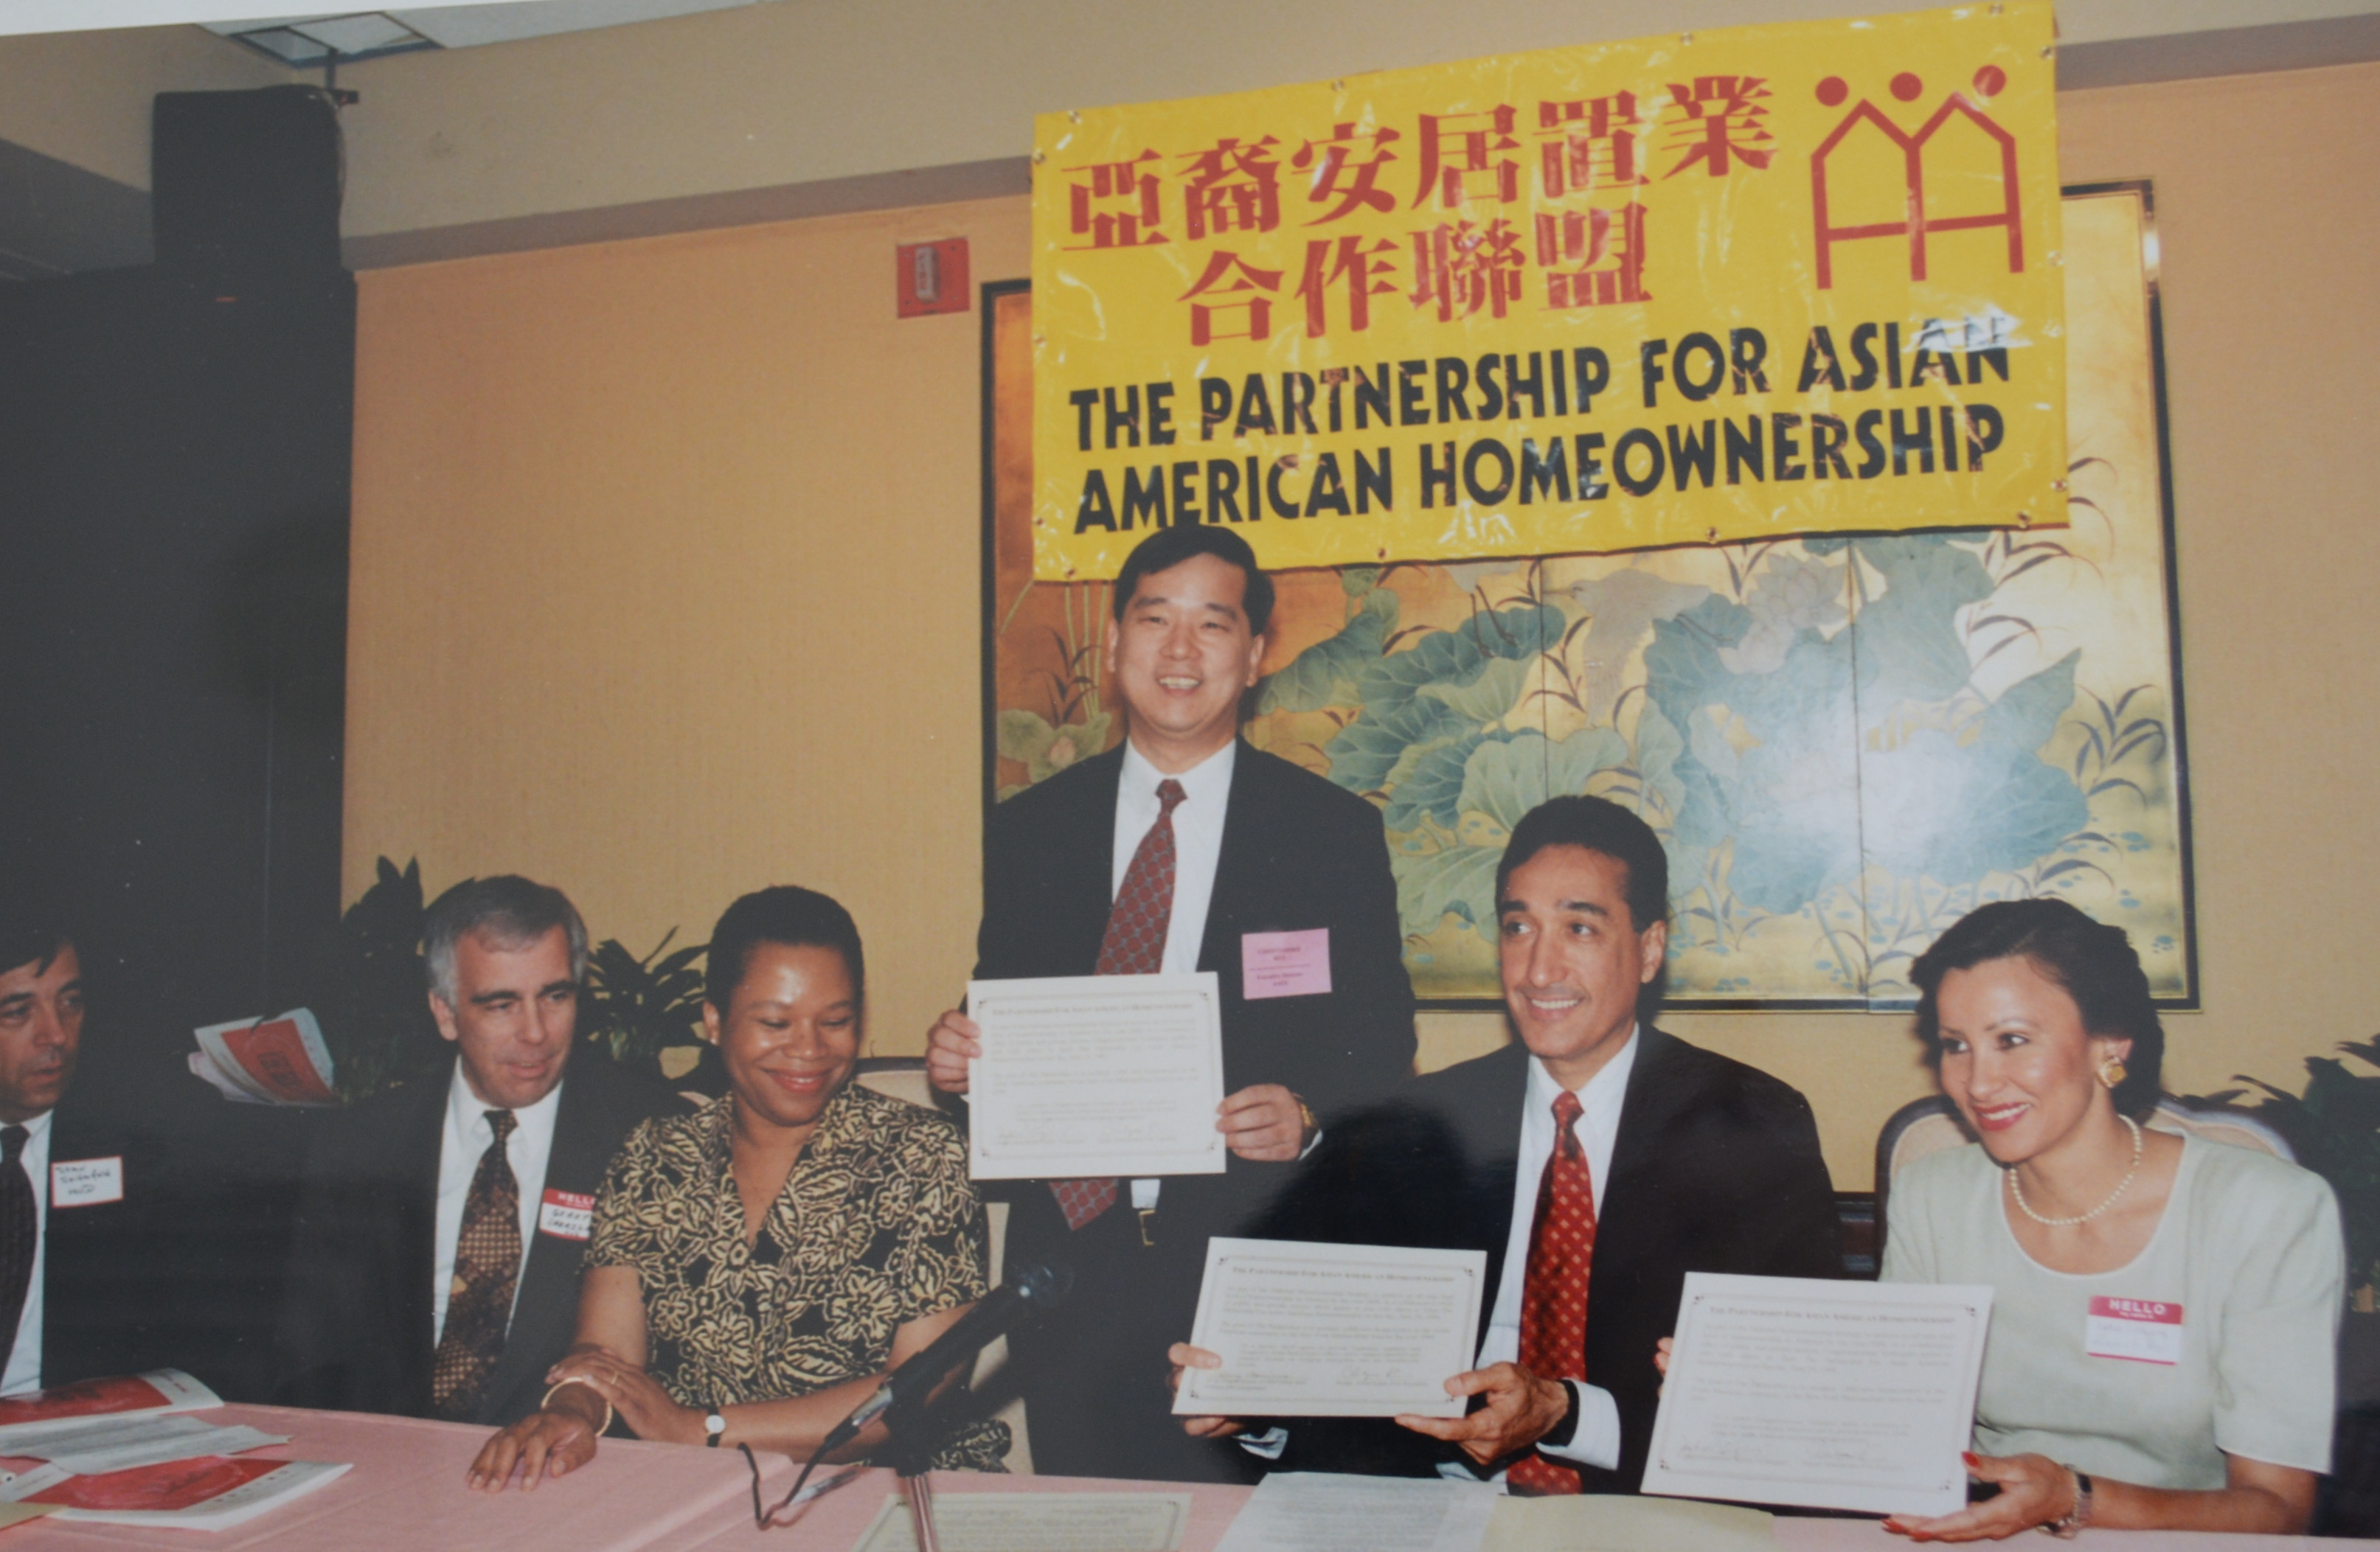 Issues asians in legal community face information not